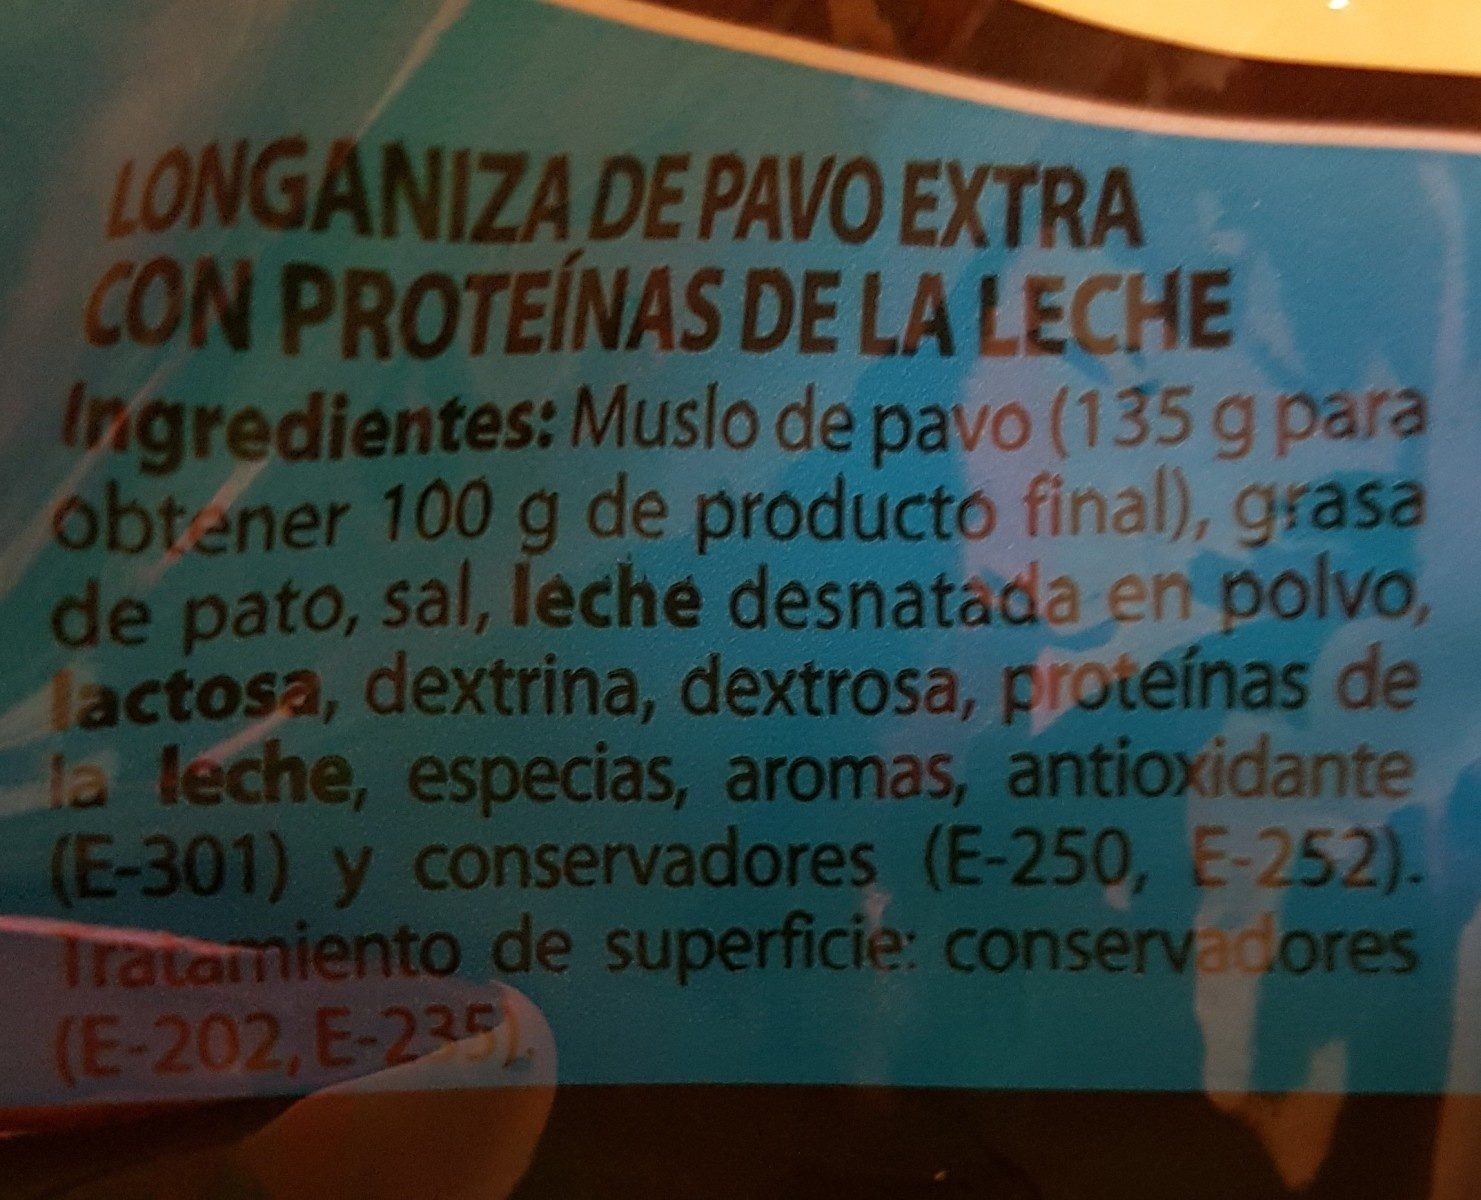 Longaniza de pavo - Ingredients